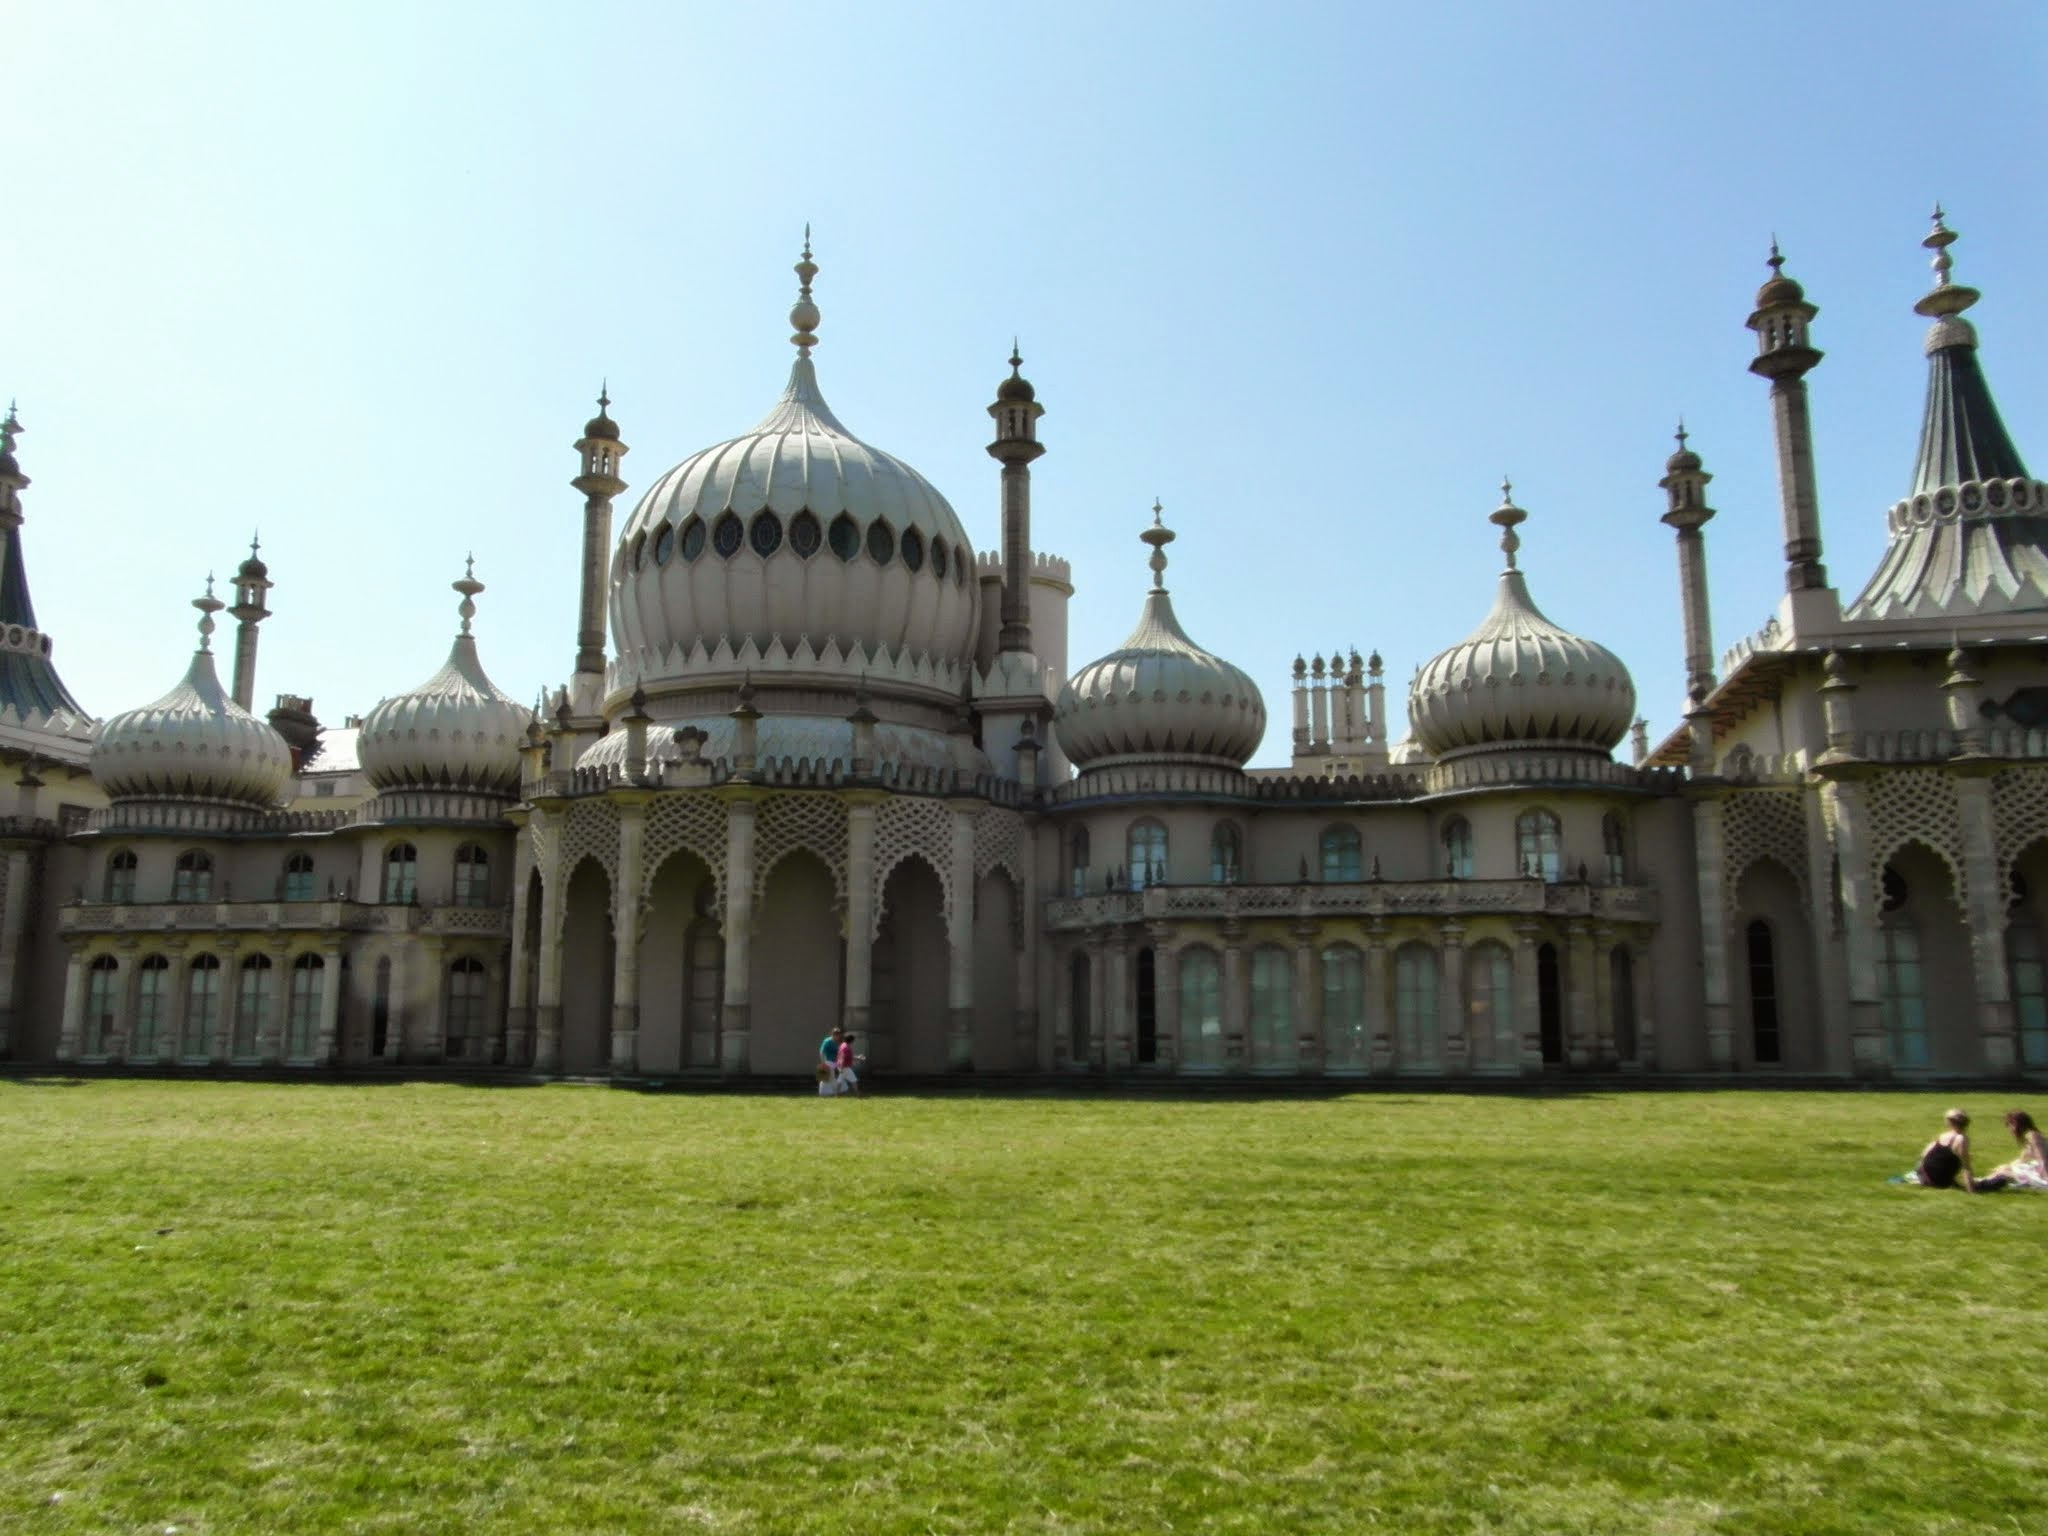 the royal pavilion essay Our grand parade campus is in the heart of brighton, across the road from the royal pavilion and a five-minute walk from the beach after your lectures you'll be right in the city centre, close to all the best pubs, clubs, restaurants and cafes that brighton has to offer.